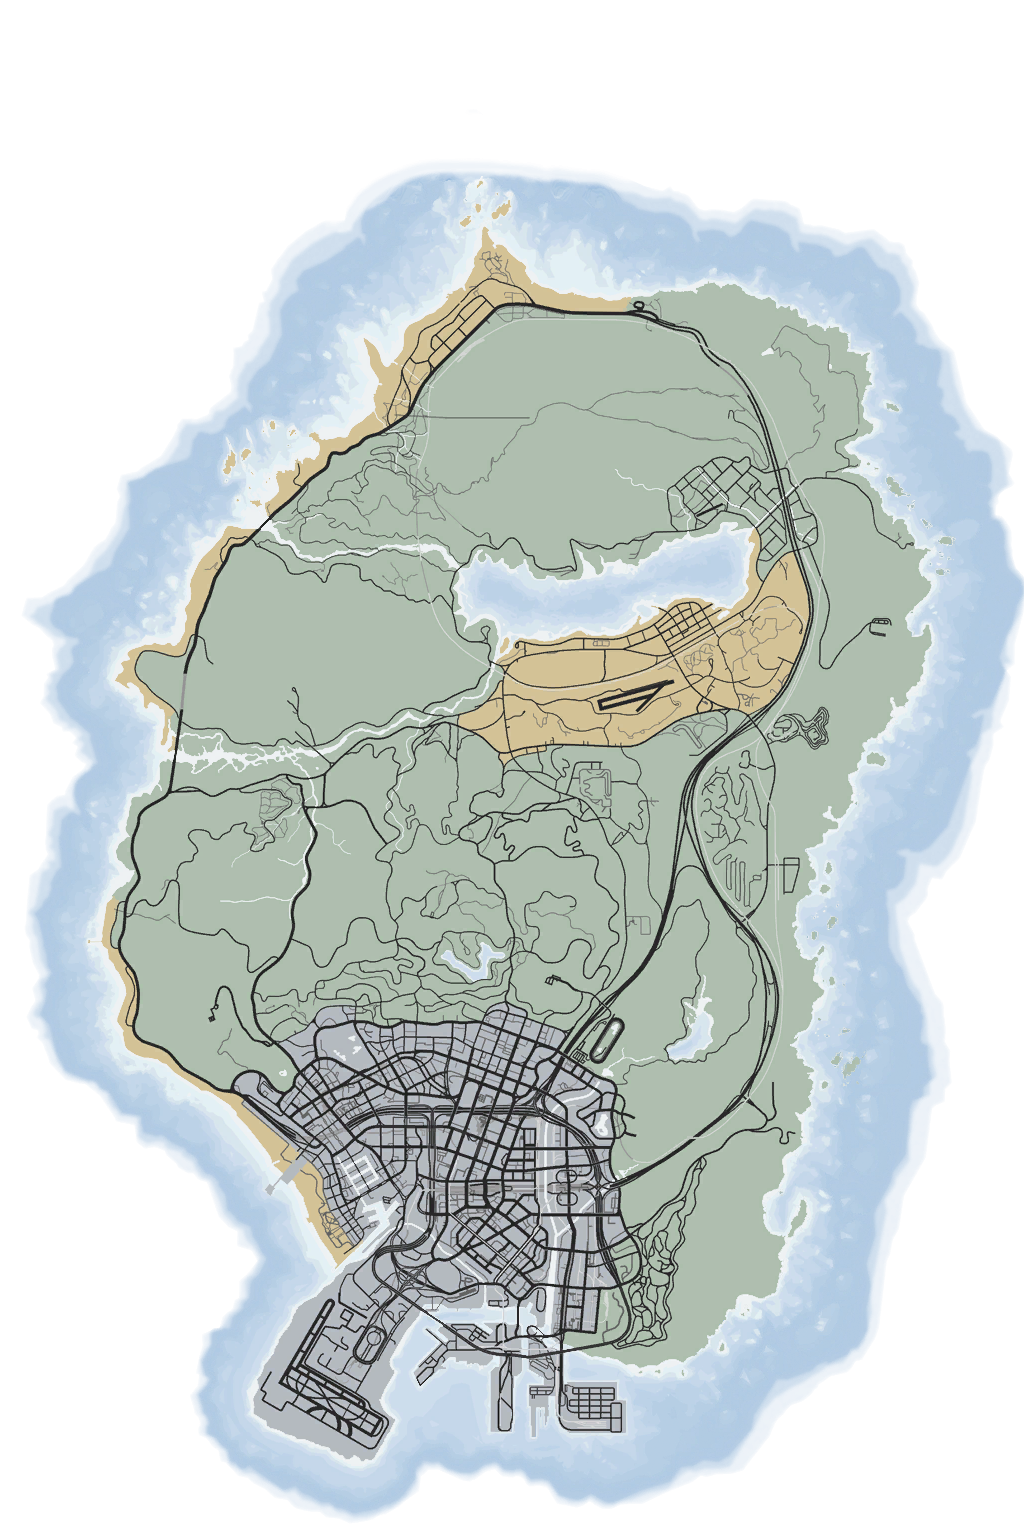 Gta 5 map png. Fiverp v roleplay the